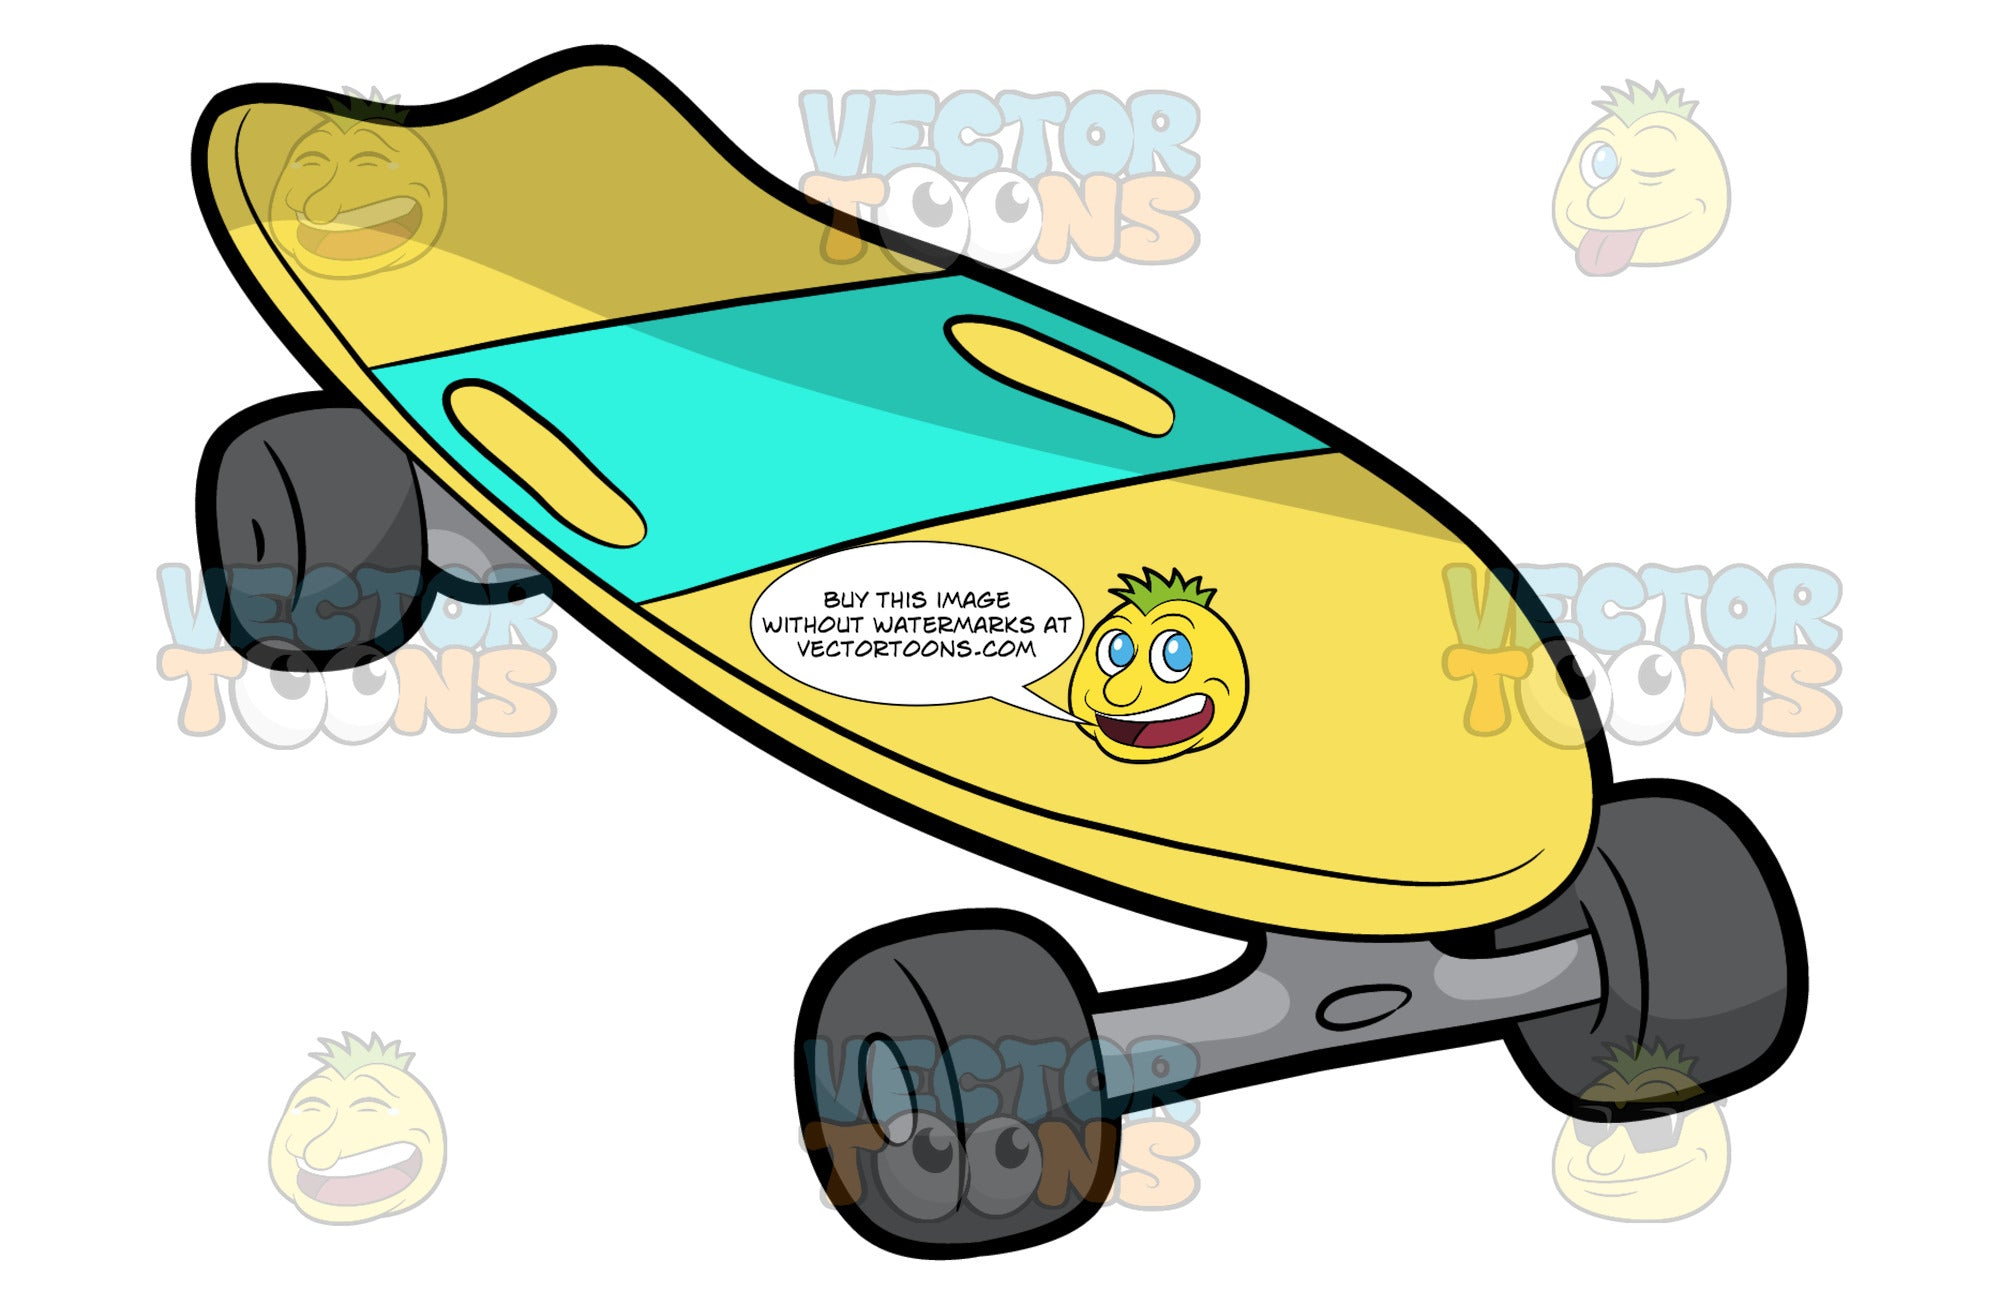 An Old School Skateboard. A skateboard with yellow deck, aqua green grip tape, steel gray trucks with dark gray wheels